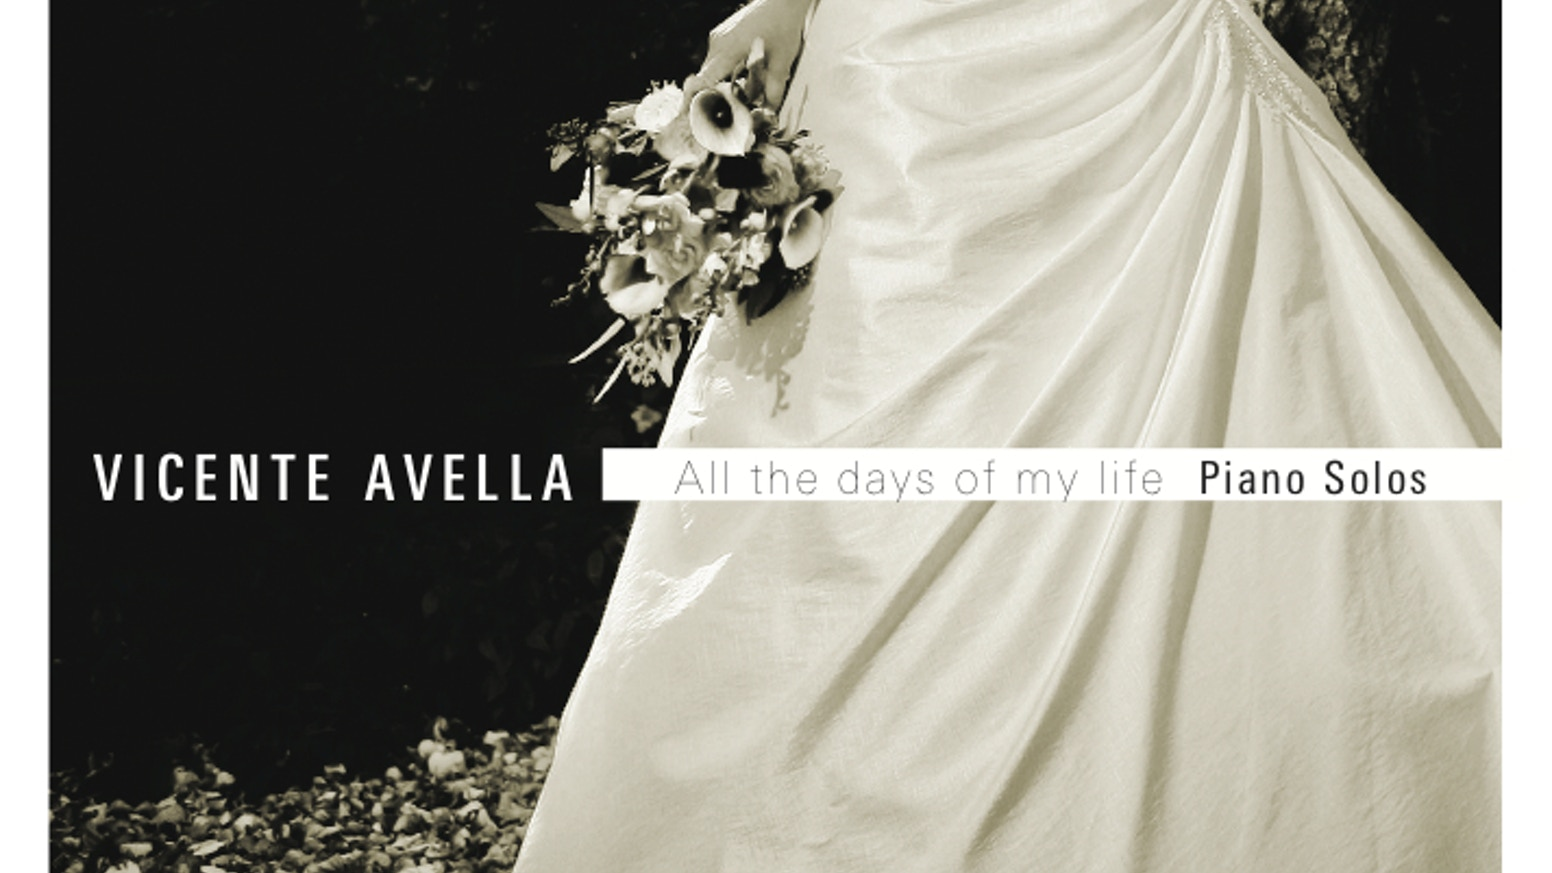 ALL THE DAYS OF MY LIFE: SOLO PIANO ALBUM BY VICENTE AVELLA